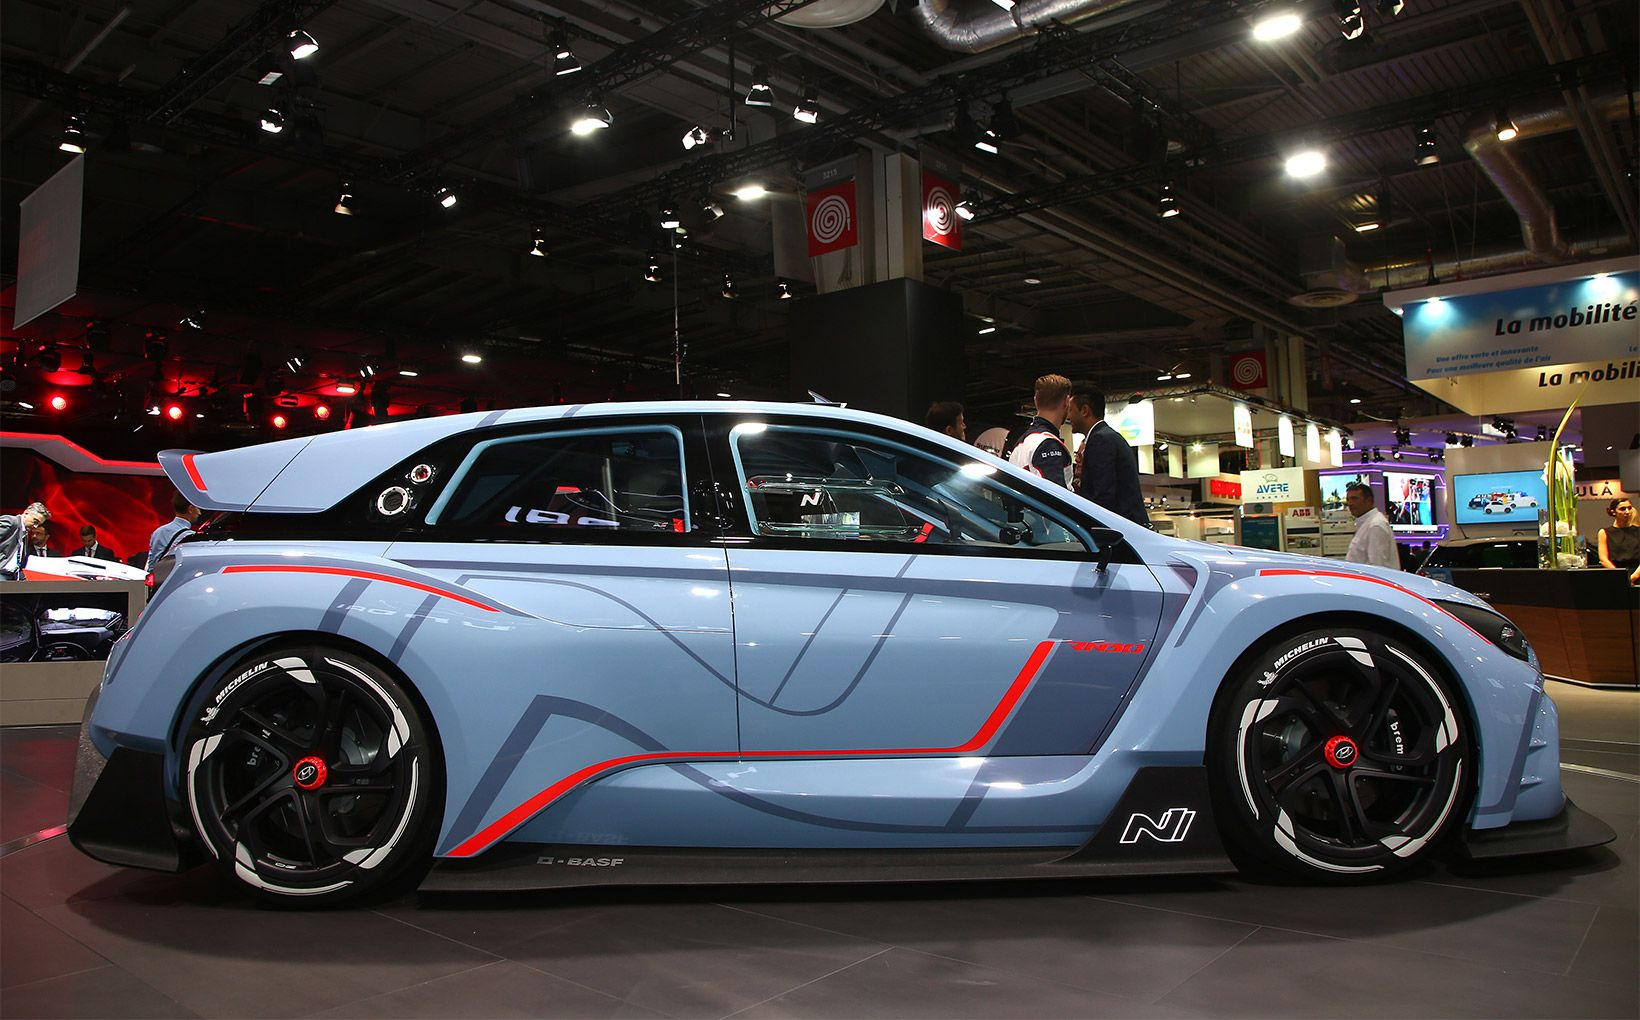 Four Door Sports Coupe? If The RN30 Concept Is Anything To Go By, The New  Hyundai I30 N Coupe Could Fit Into Any Of Those Three Categories.